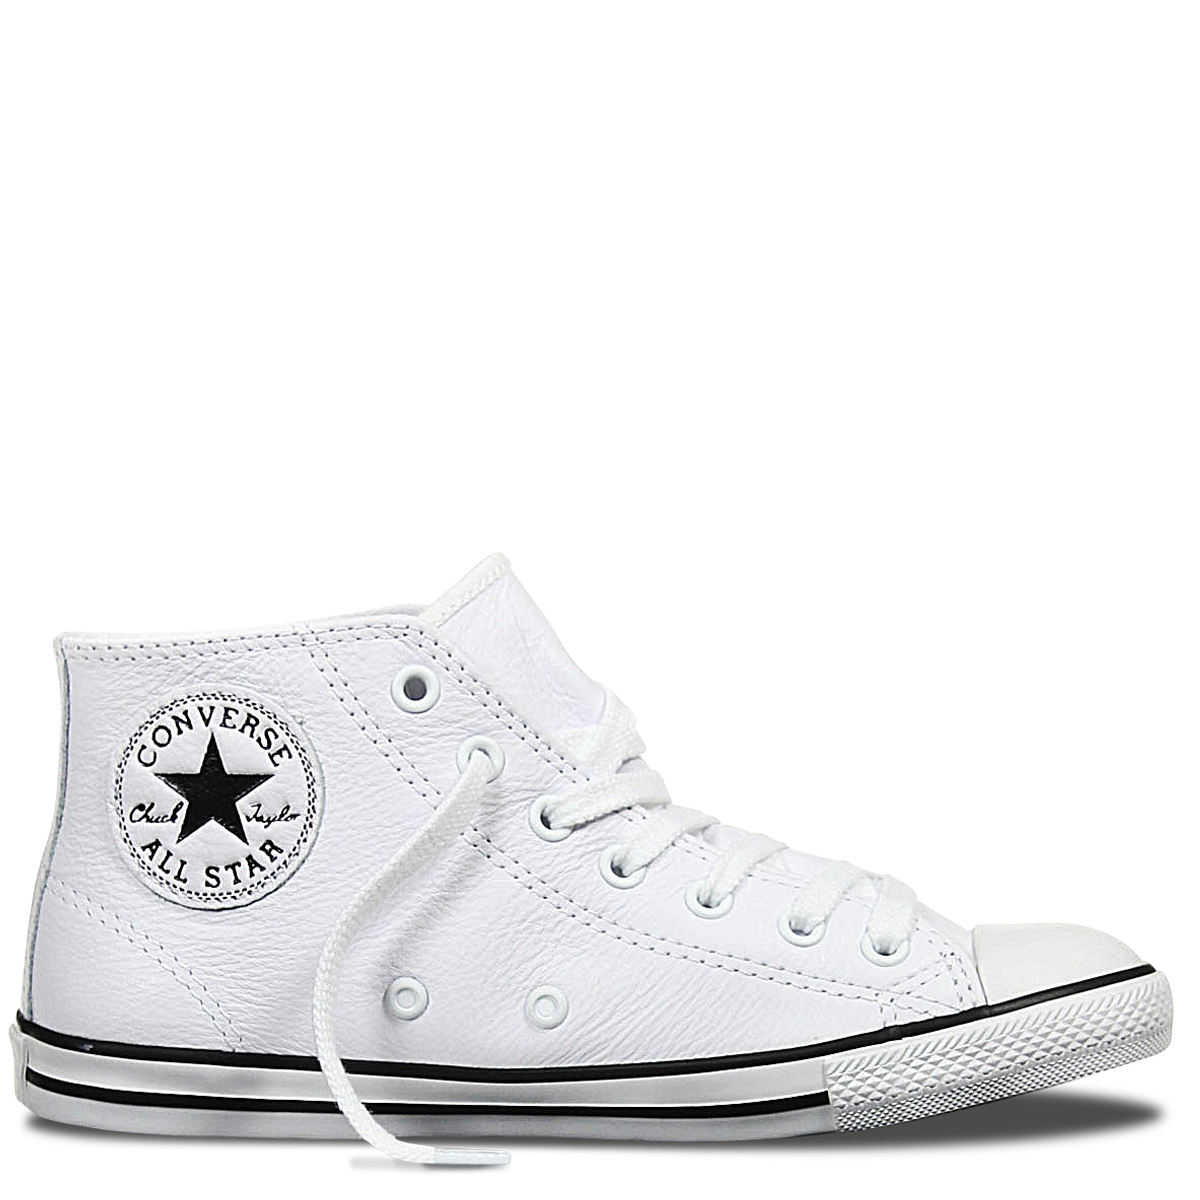 b7c4ba17477 Chuck Taylor All Star Dainty Leather Mid White | Converse Australia ...